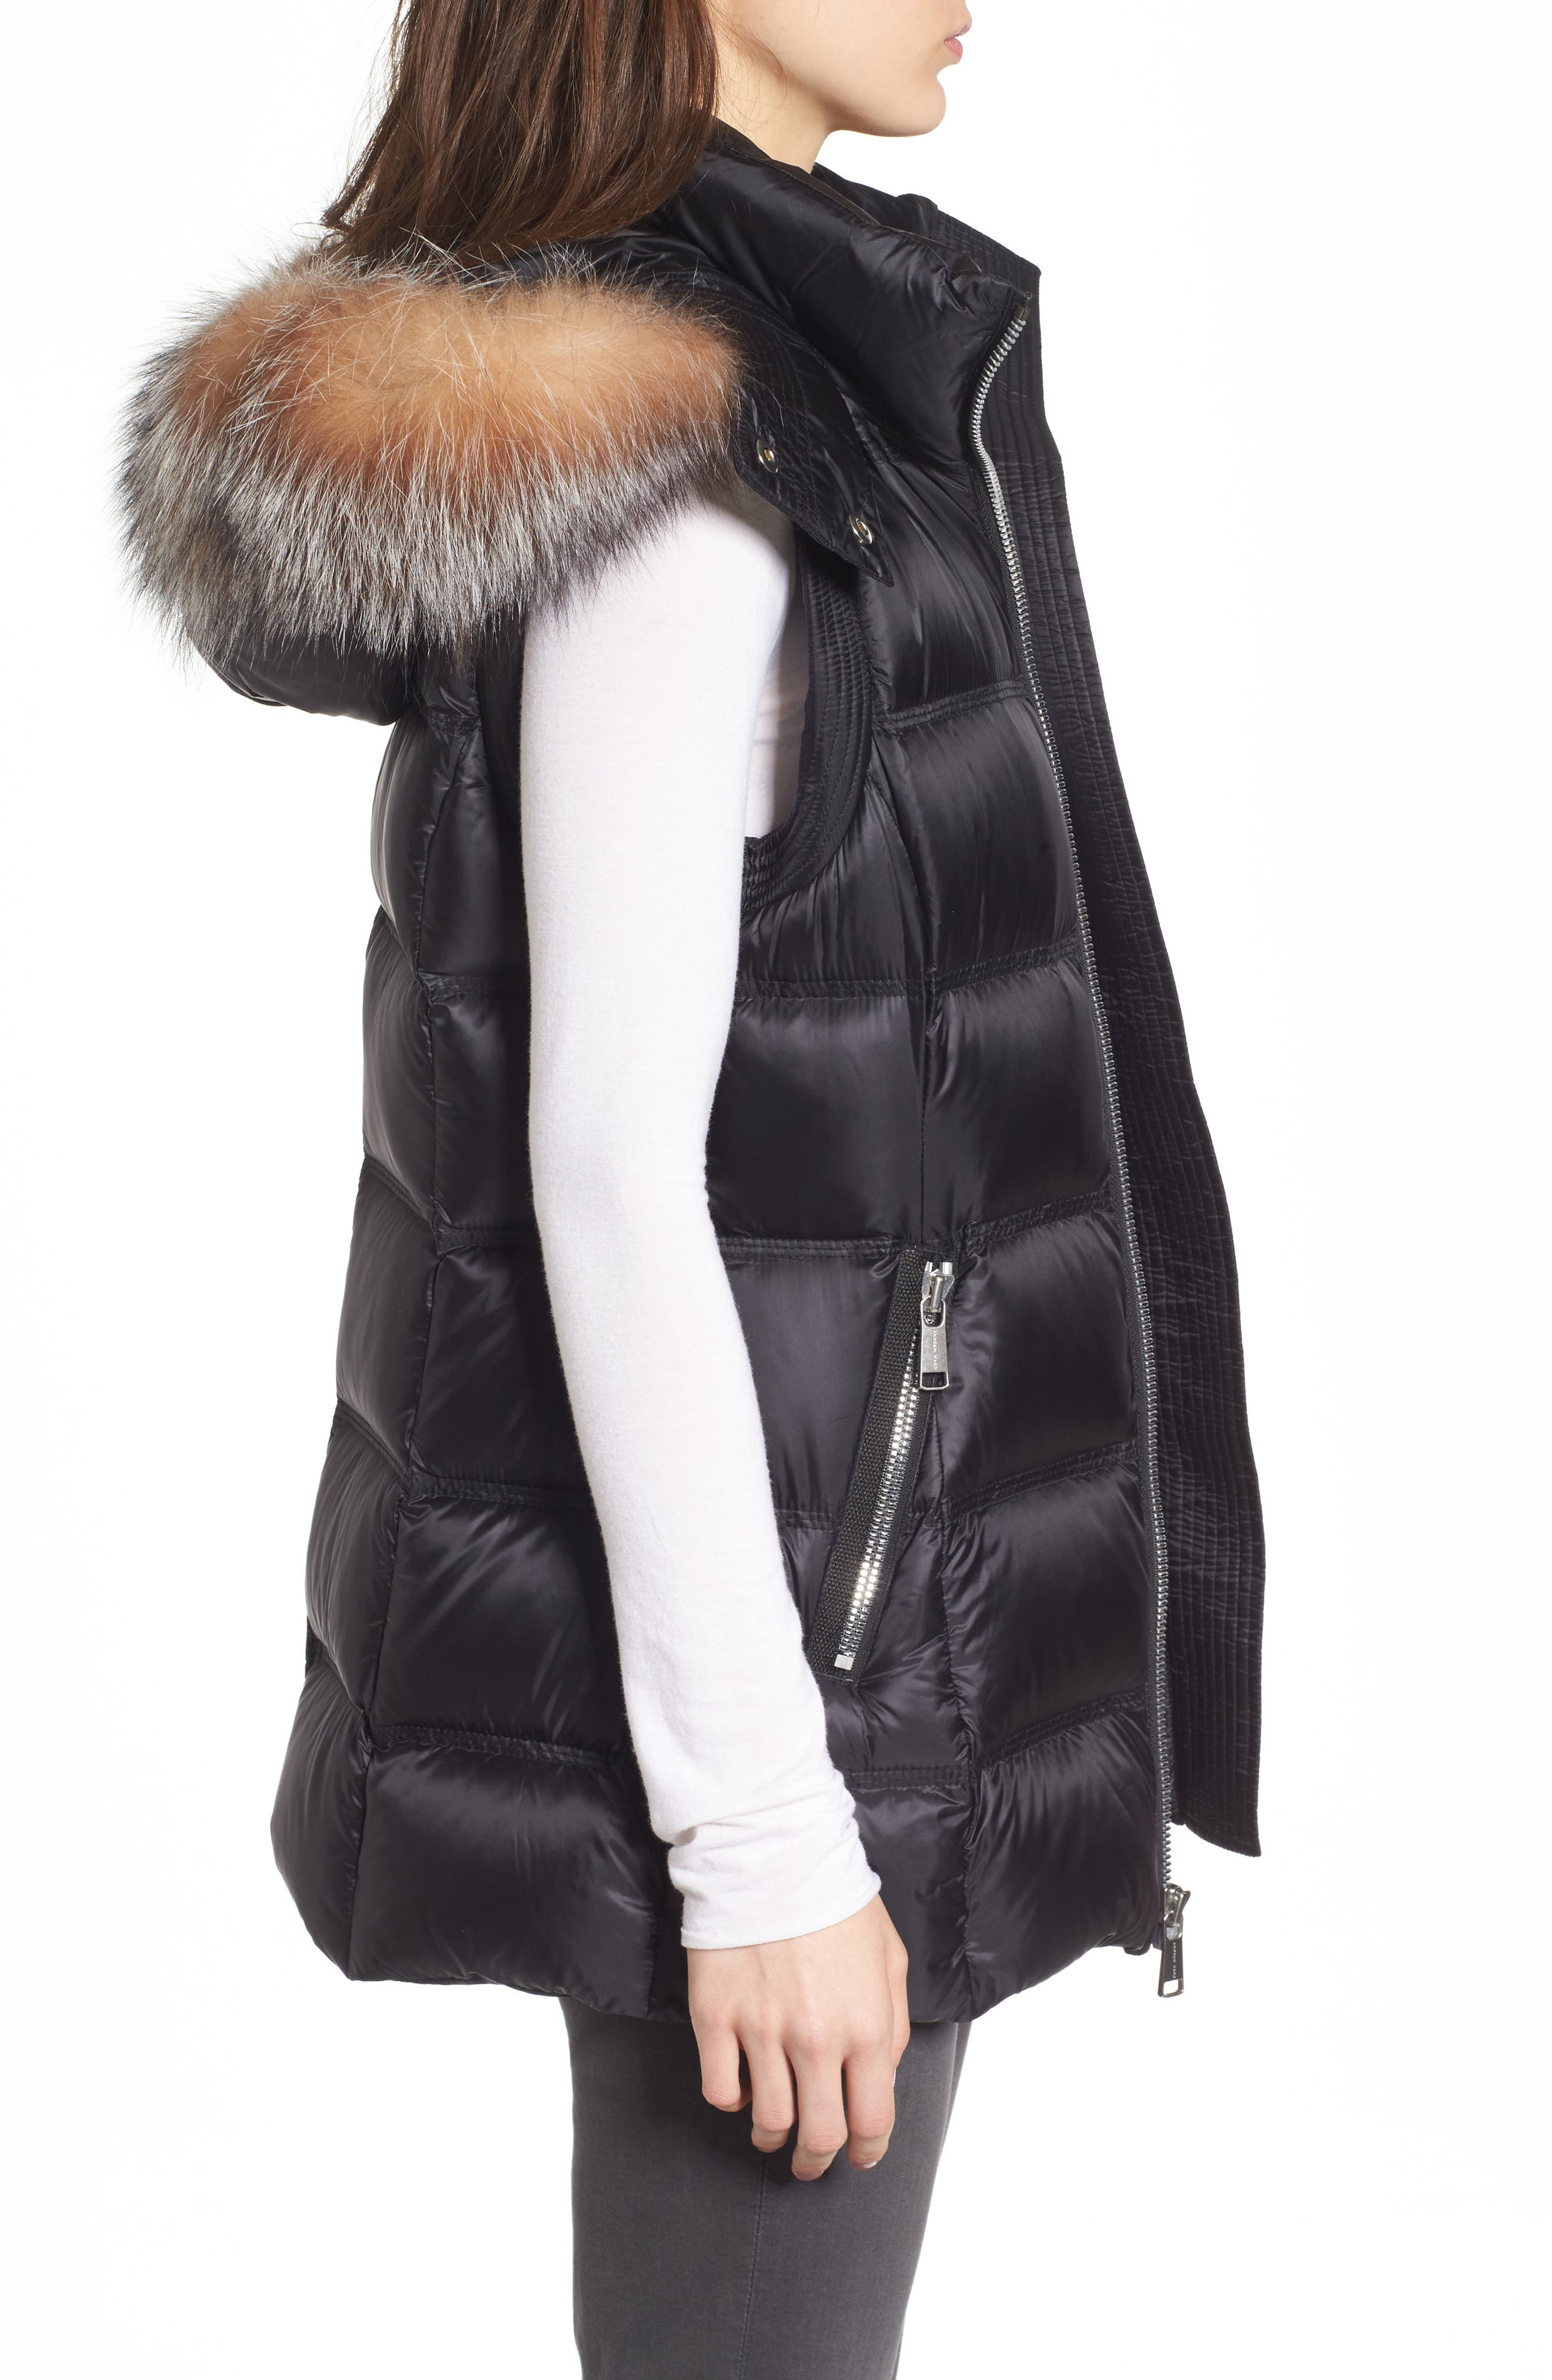 Cambridge Genuine Rabbit Fur & Leather Jacket,                             Alternate thumbnail 3, color,                             001